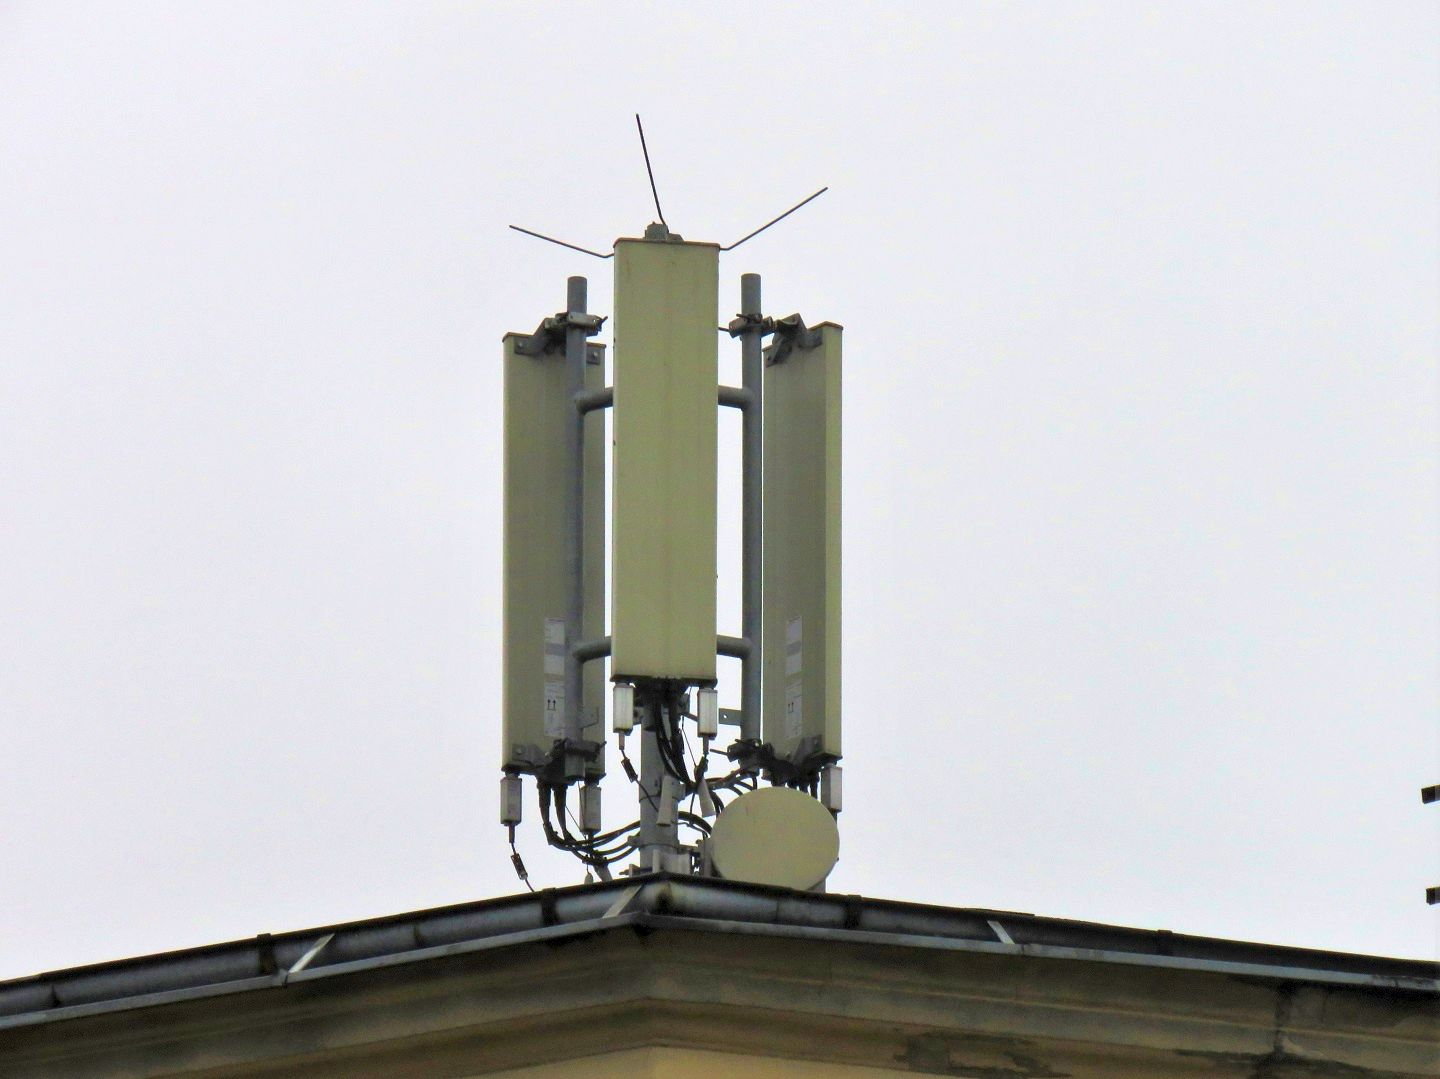 Dual band Kathrein antennas